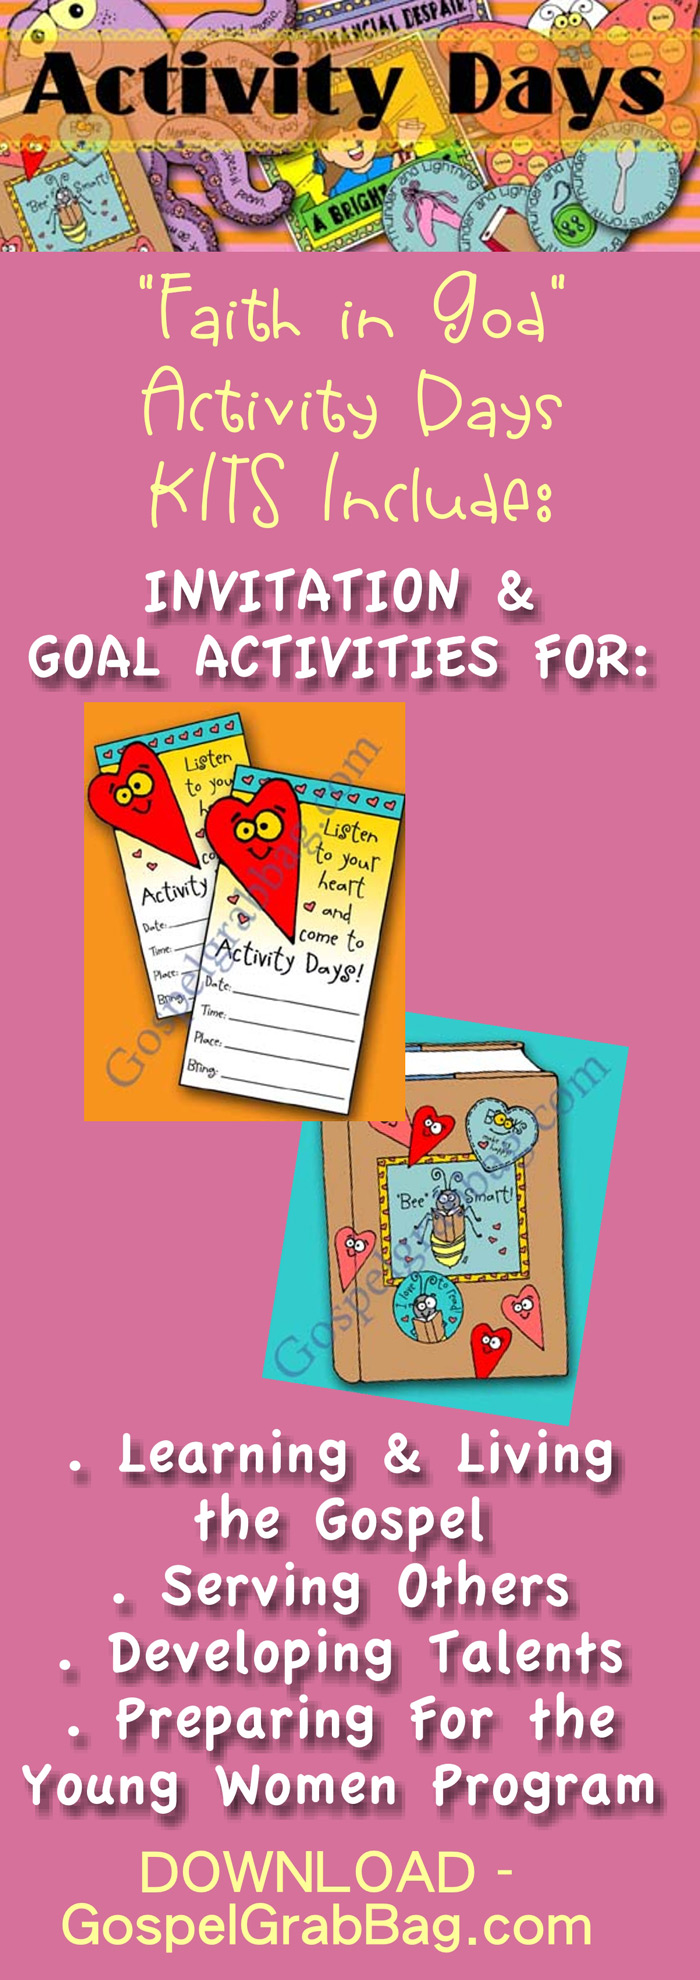 Faith in God ACTIVITY DAYS Kits include an invitation and one or more activities for every goal in the Program. DOWNLOAD them all here at GospelGrabBag.com